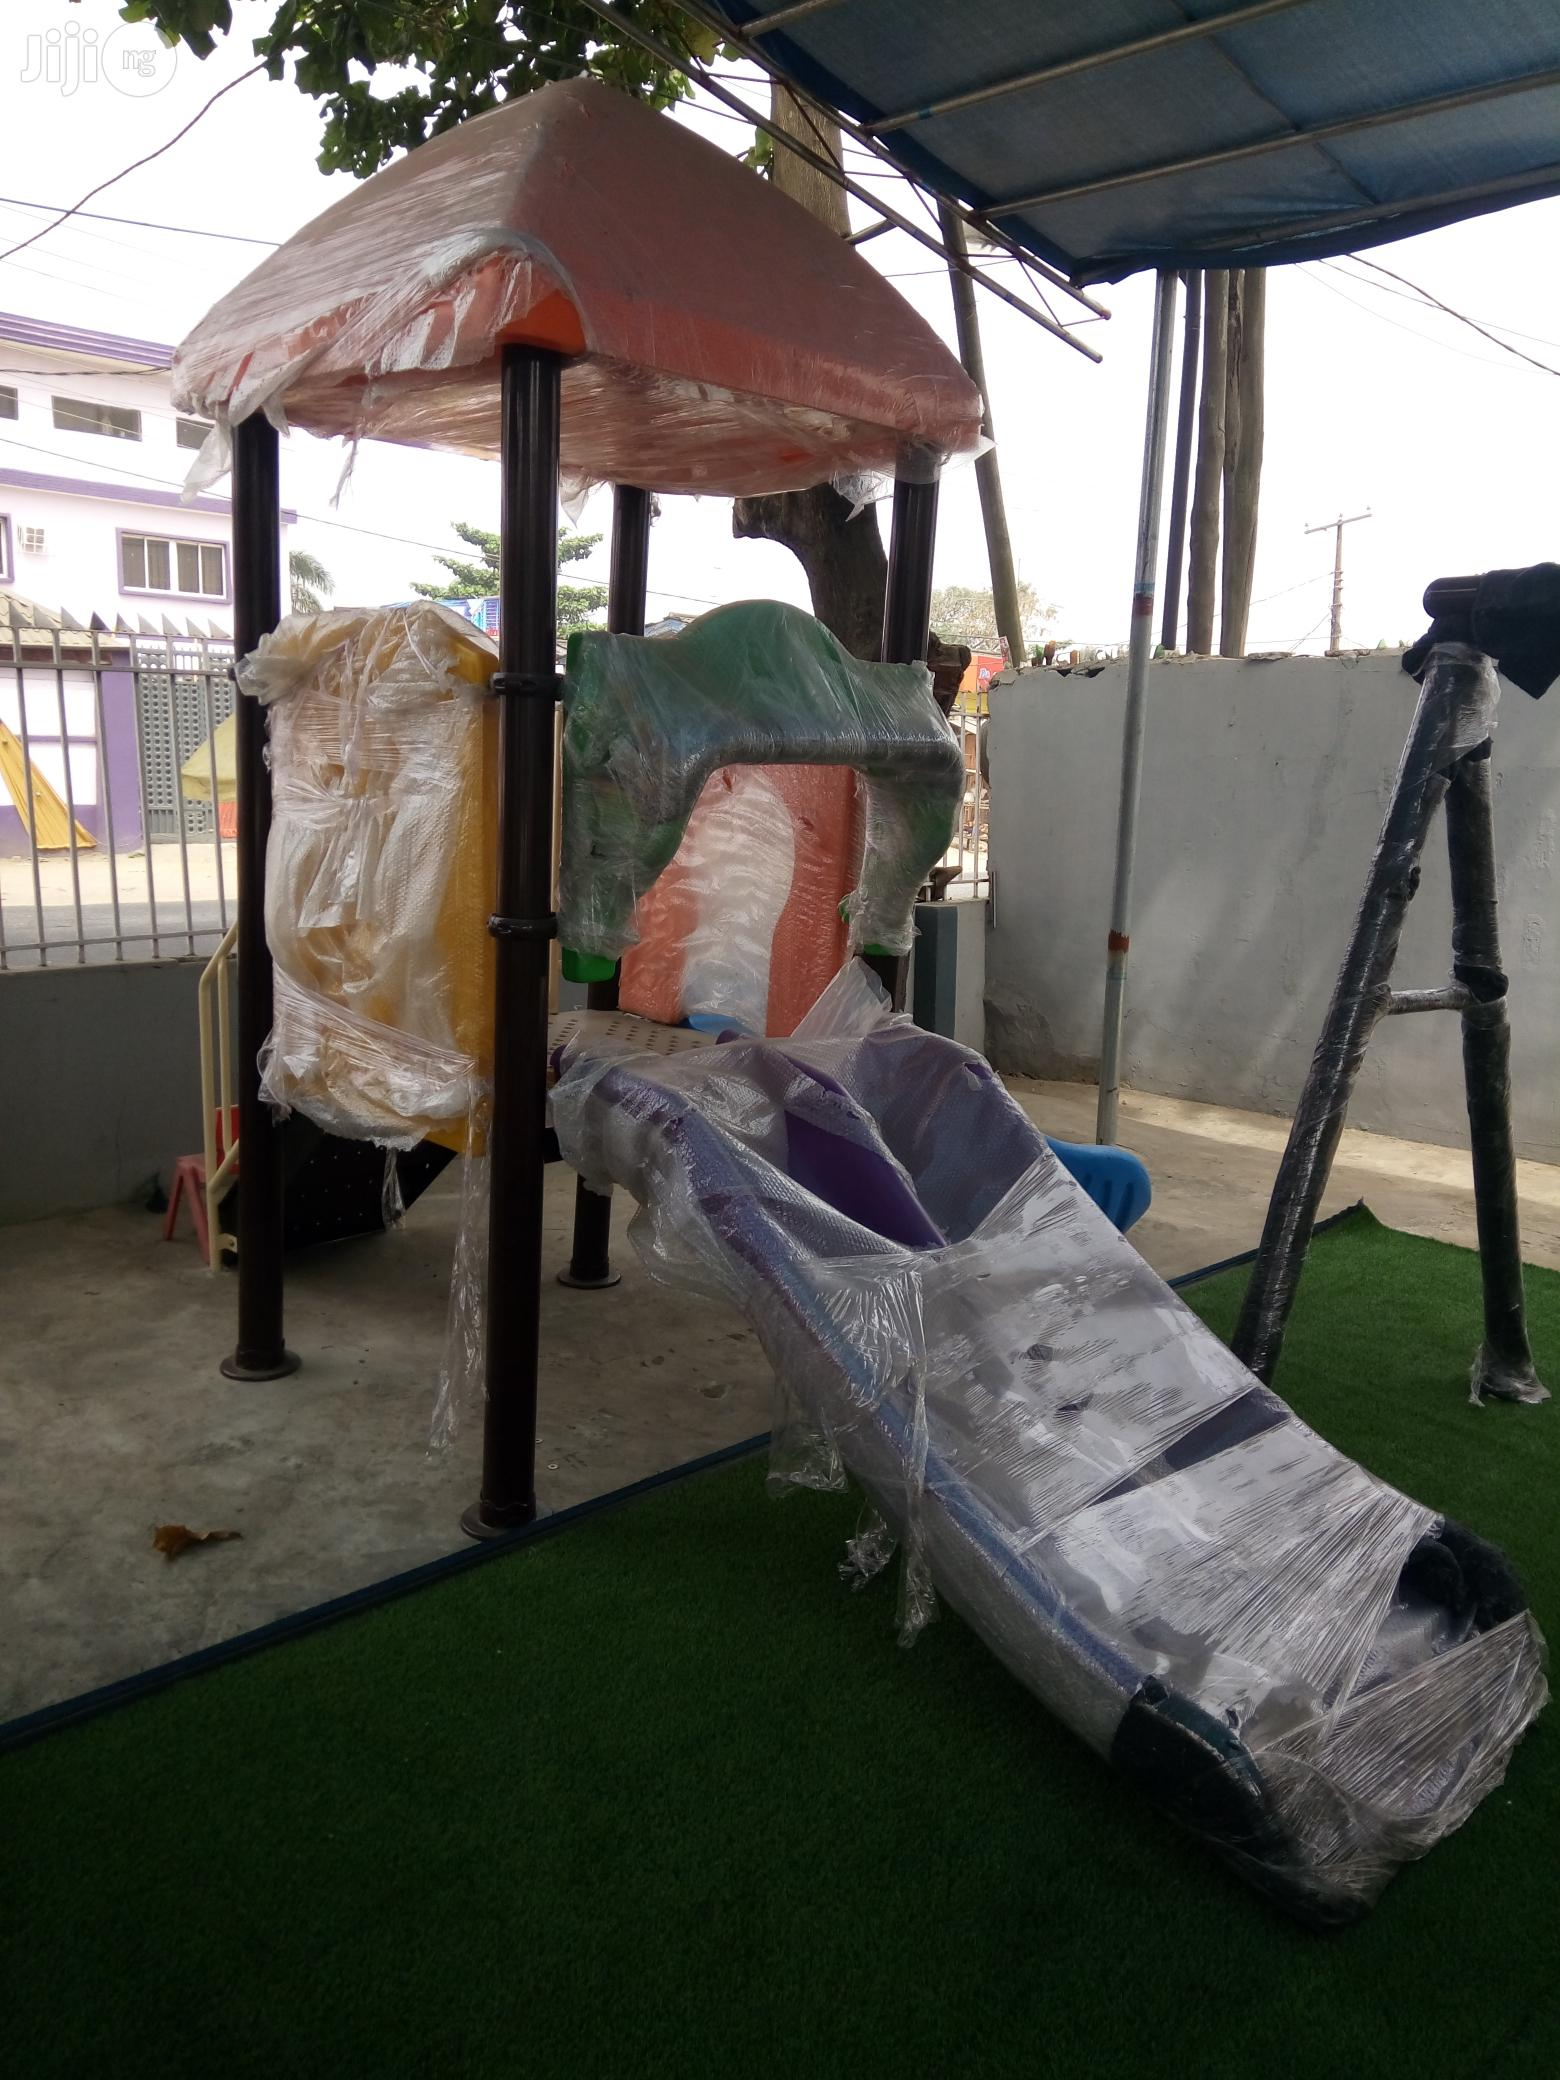 Available Now For Sale, Single Playground House With Slides